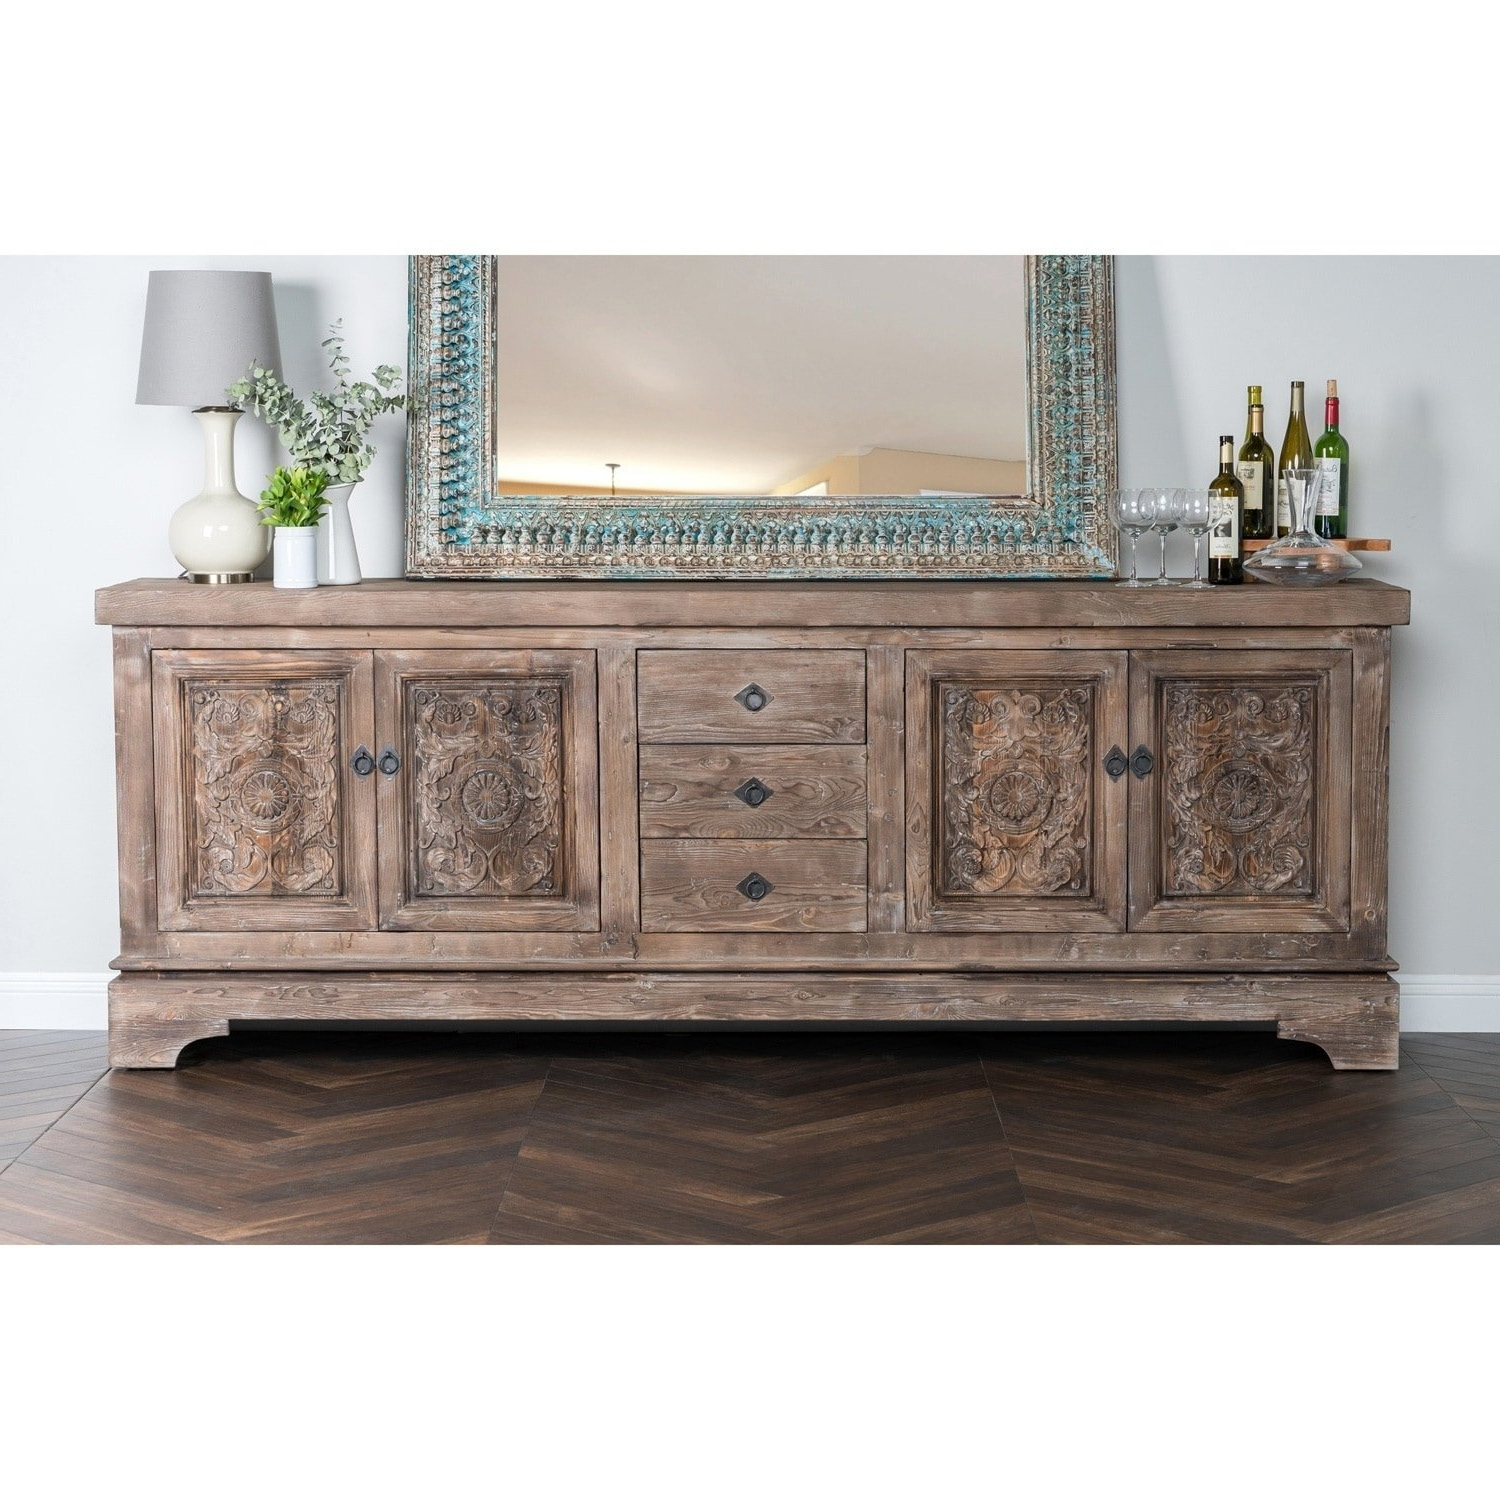 Shop Allen Rustic Taupe Reclaimed Pine 106 Inch Sideboardkosas Intended For Current Aged Pine 3 Drawer 2 Door Sideboards (View 16 of 20)